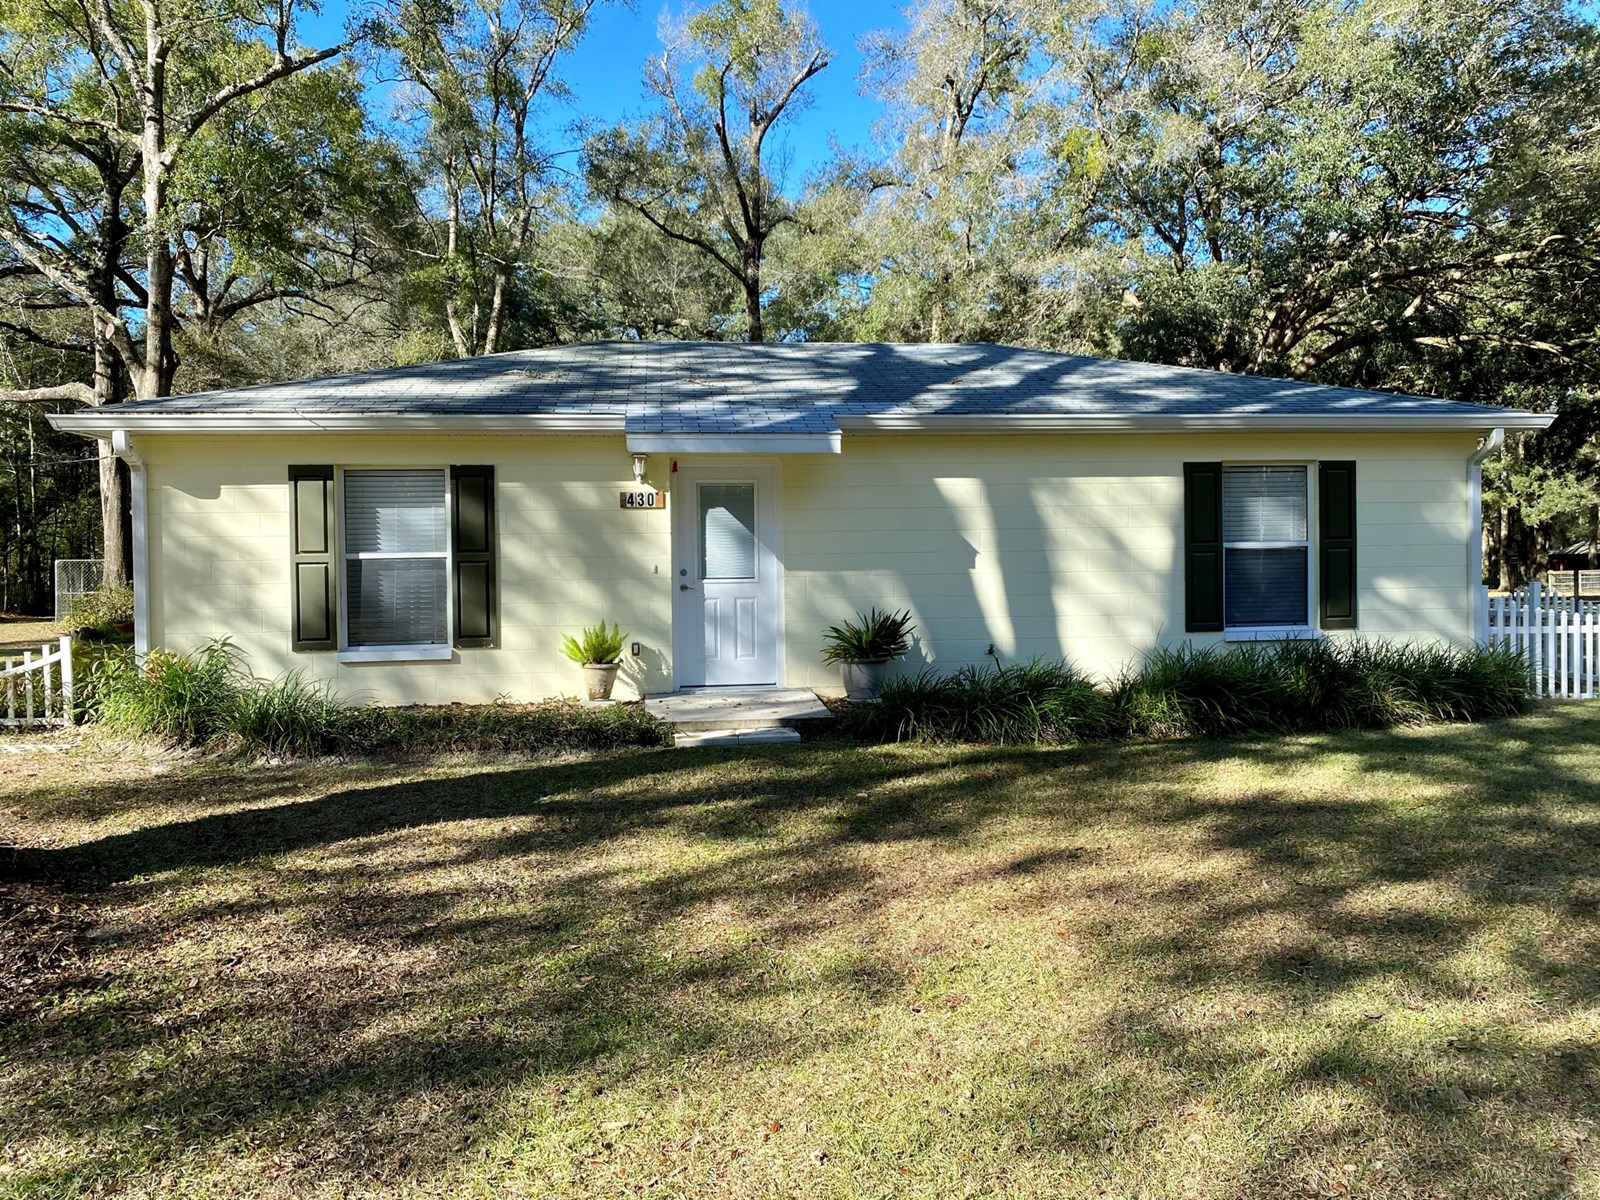 2 Bedroom 1 Bath Cottage on 1.89 Acres outside of Newberry,